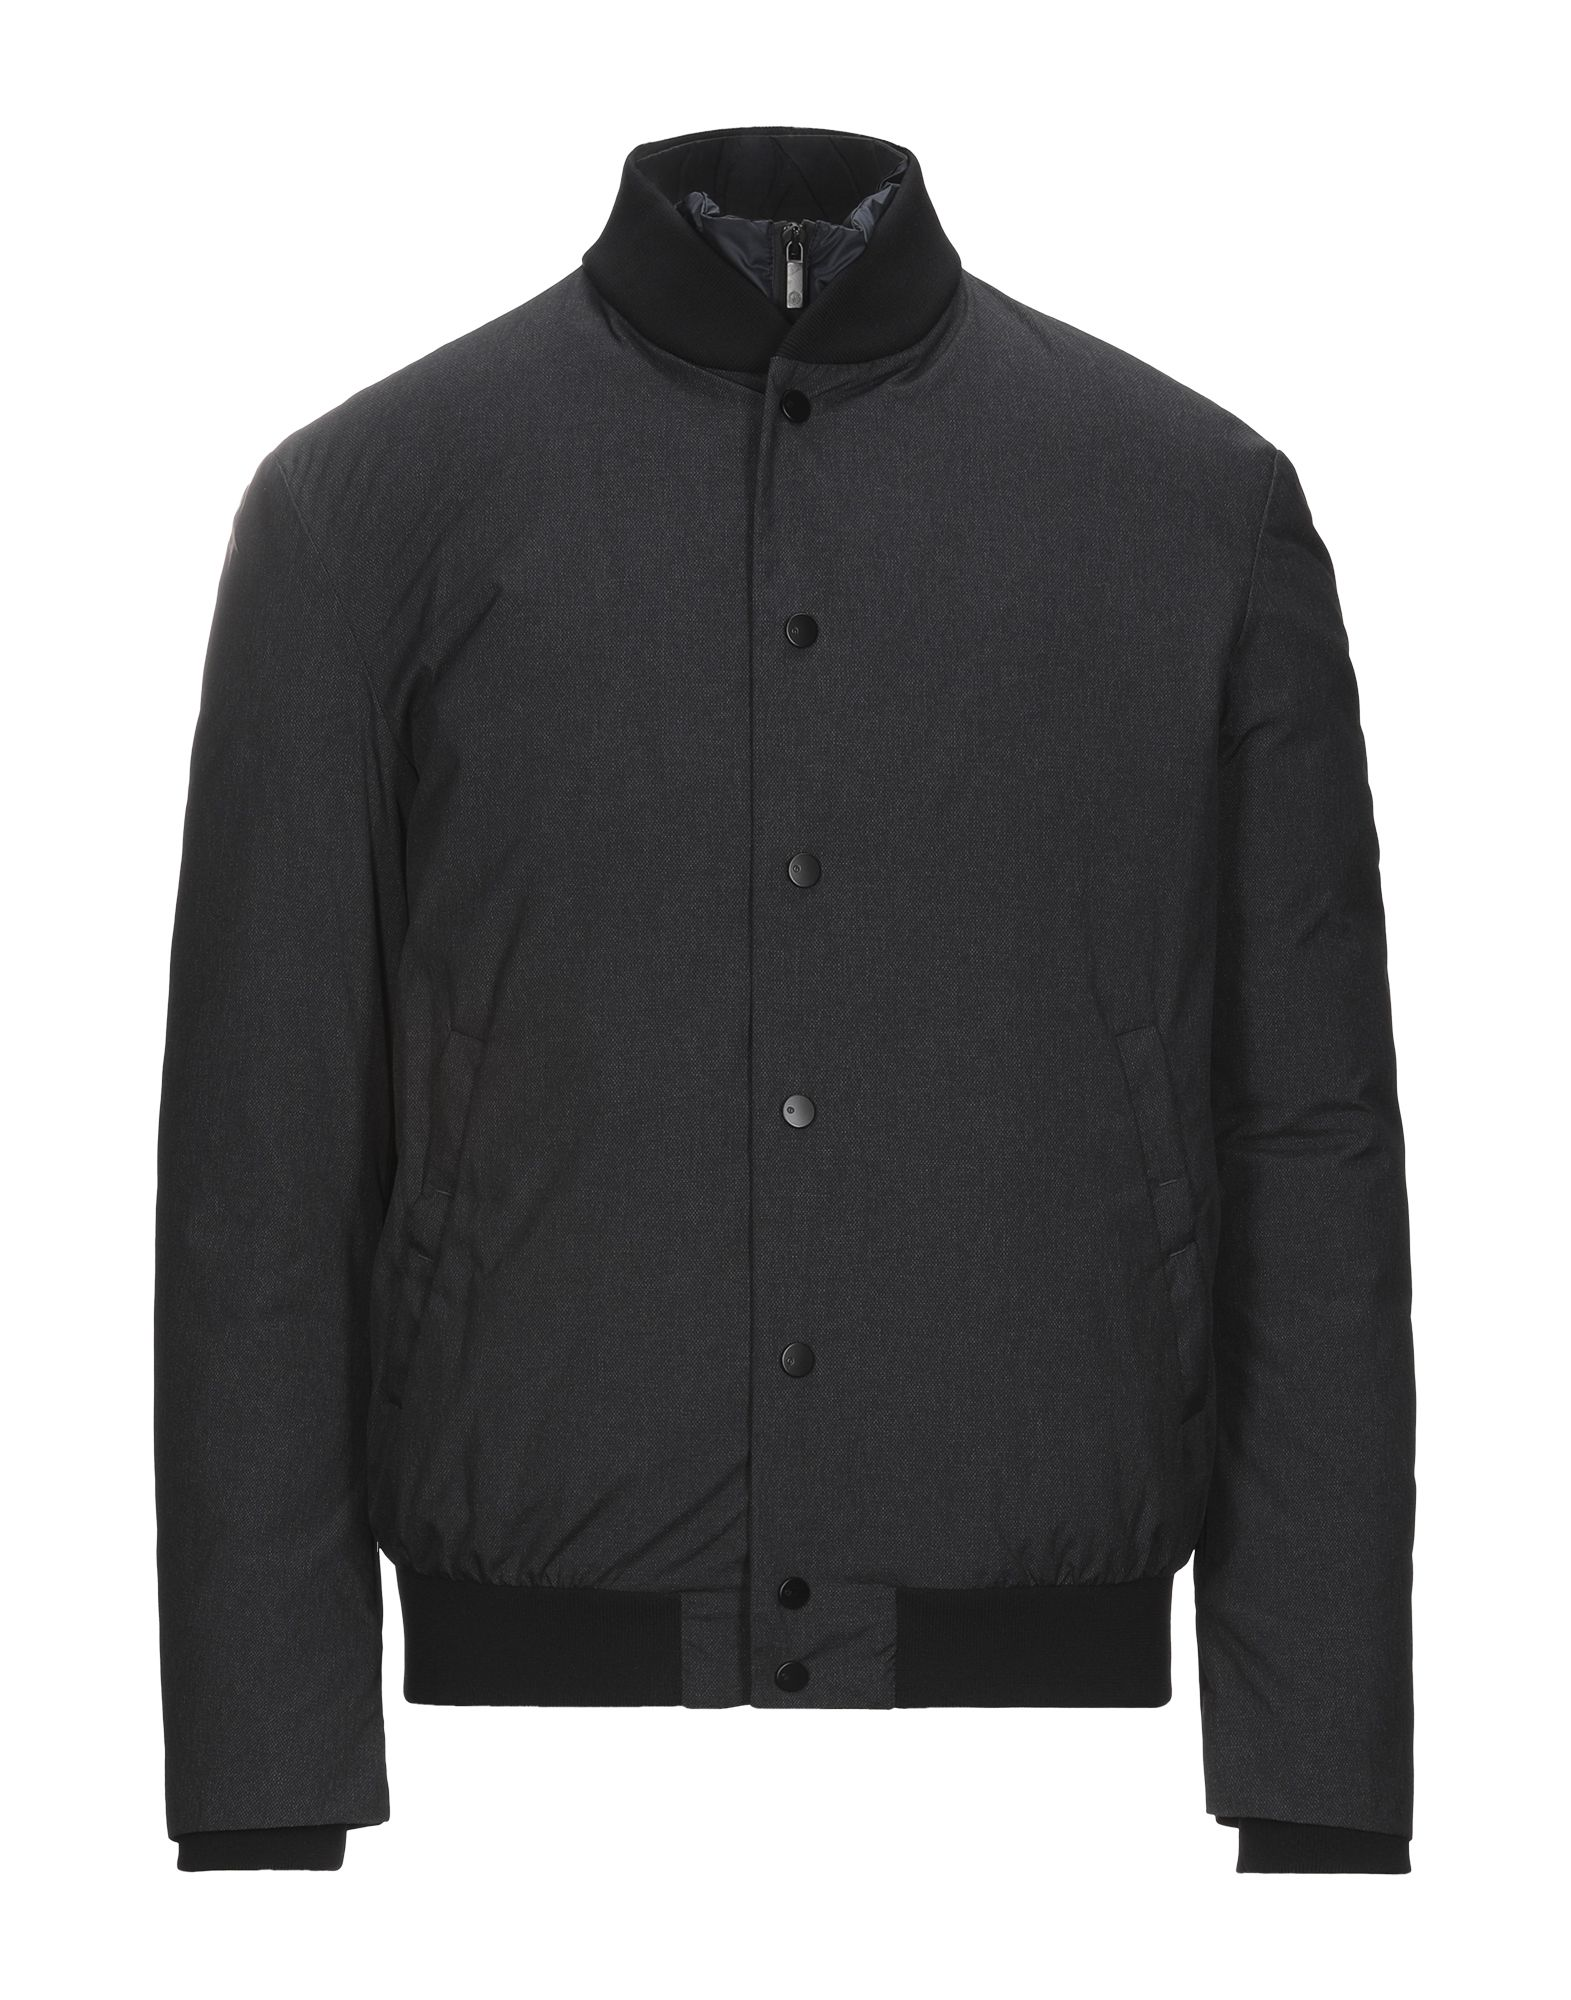 GIORGIO ARMANI Down jackets. techno fabric, no appliqués, solid color, single-breasted, snap button fastening, round collar, multipockets, long sleeves, goose down interior, contains non-textile parts of animal origin, single-breasted jacket, large sized. 76% Polyamide, 24% Polyester